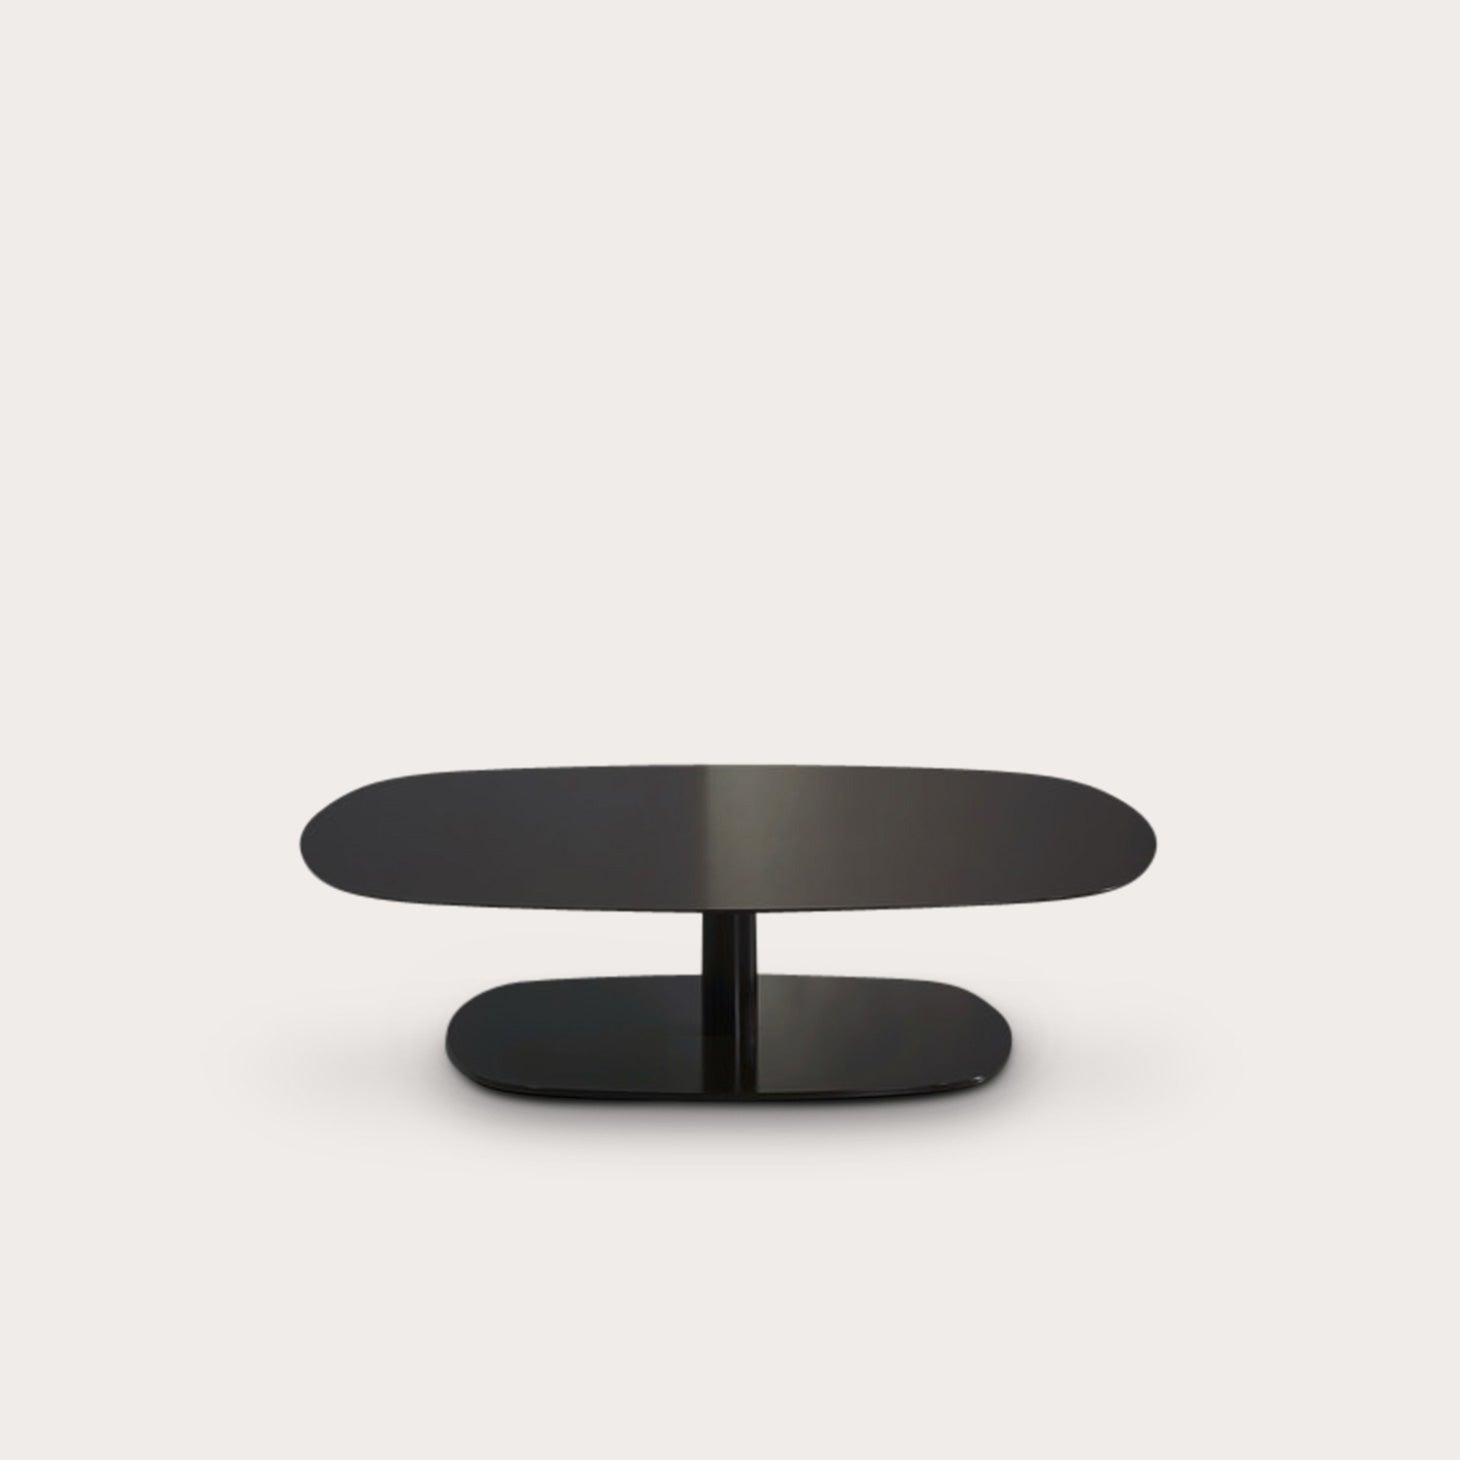 Kek Tables Piet Boon Designer Furniture Sku: 784-230-10026